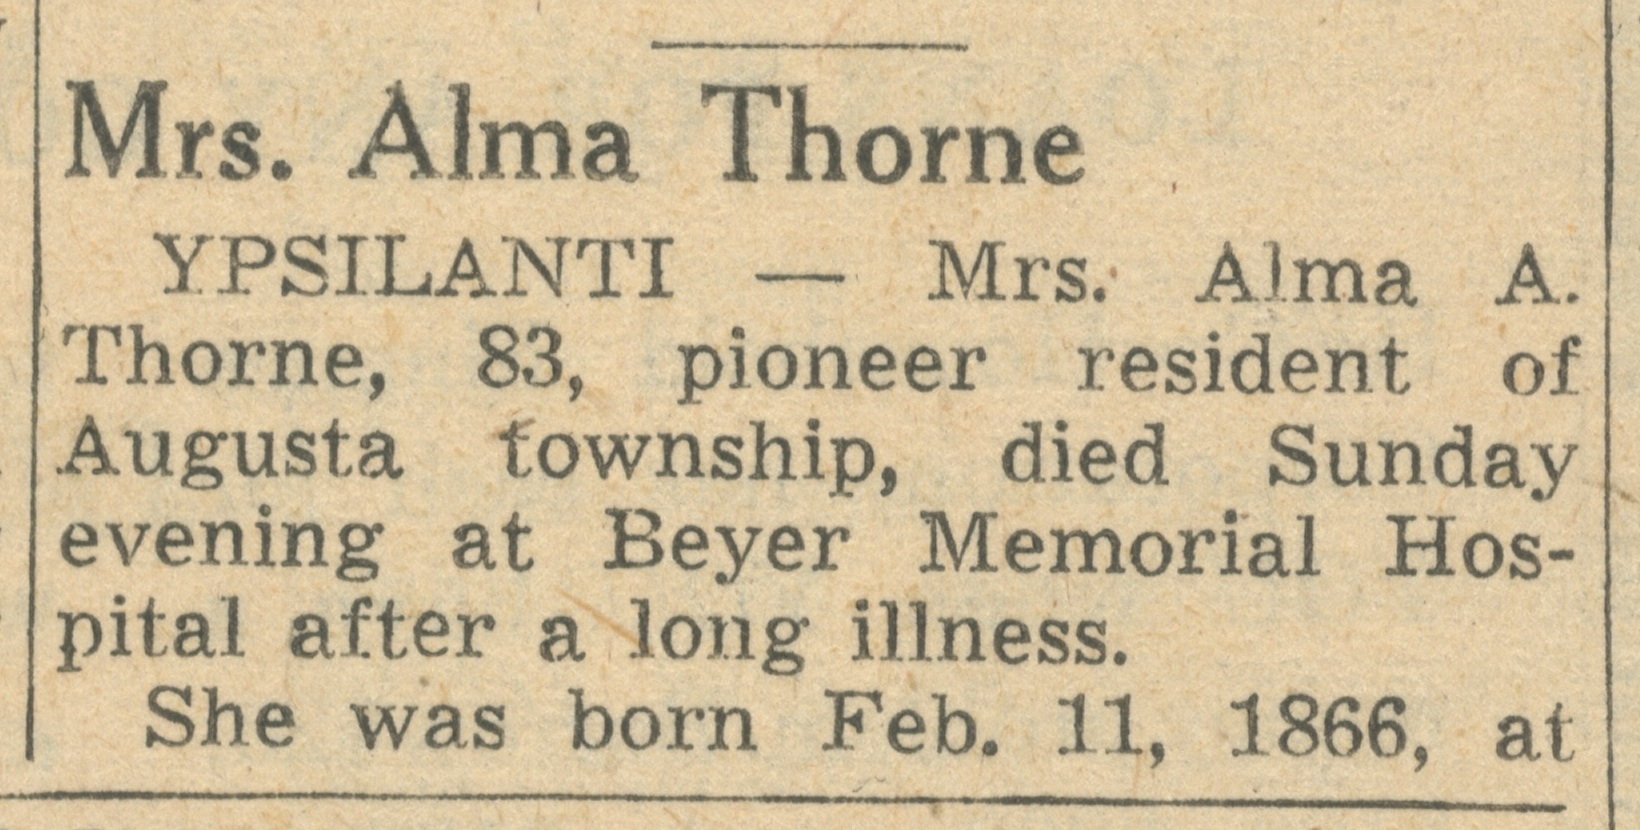 Mrs. Alma Thorne image